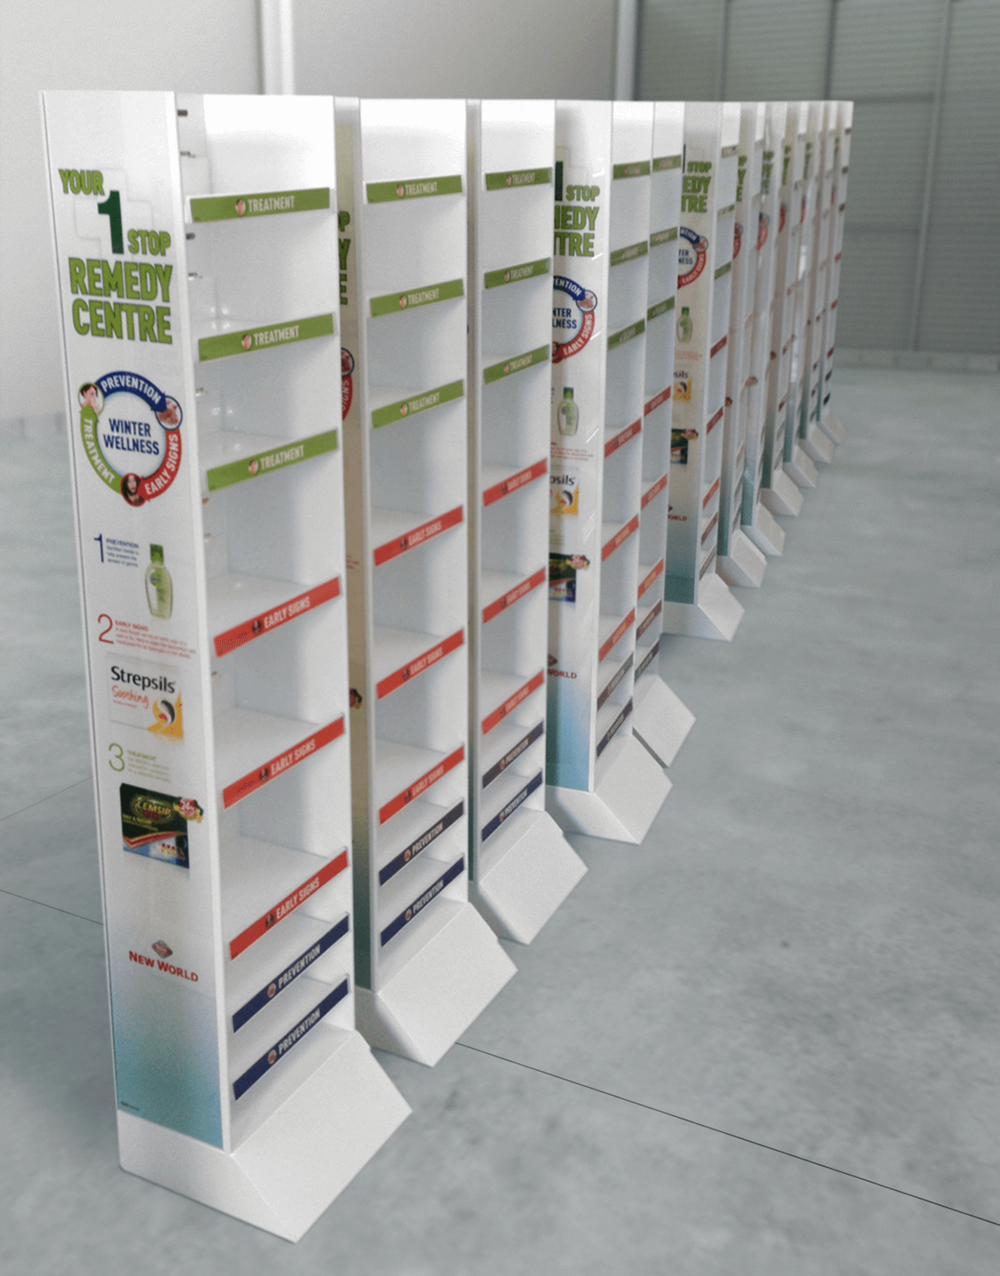 Permanent steel and acrylic floor standing unit with adjustable shelves Display design and manufacture | Visuals |  Art | Print | Pack and despatch nationwide to retailers